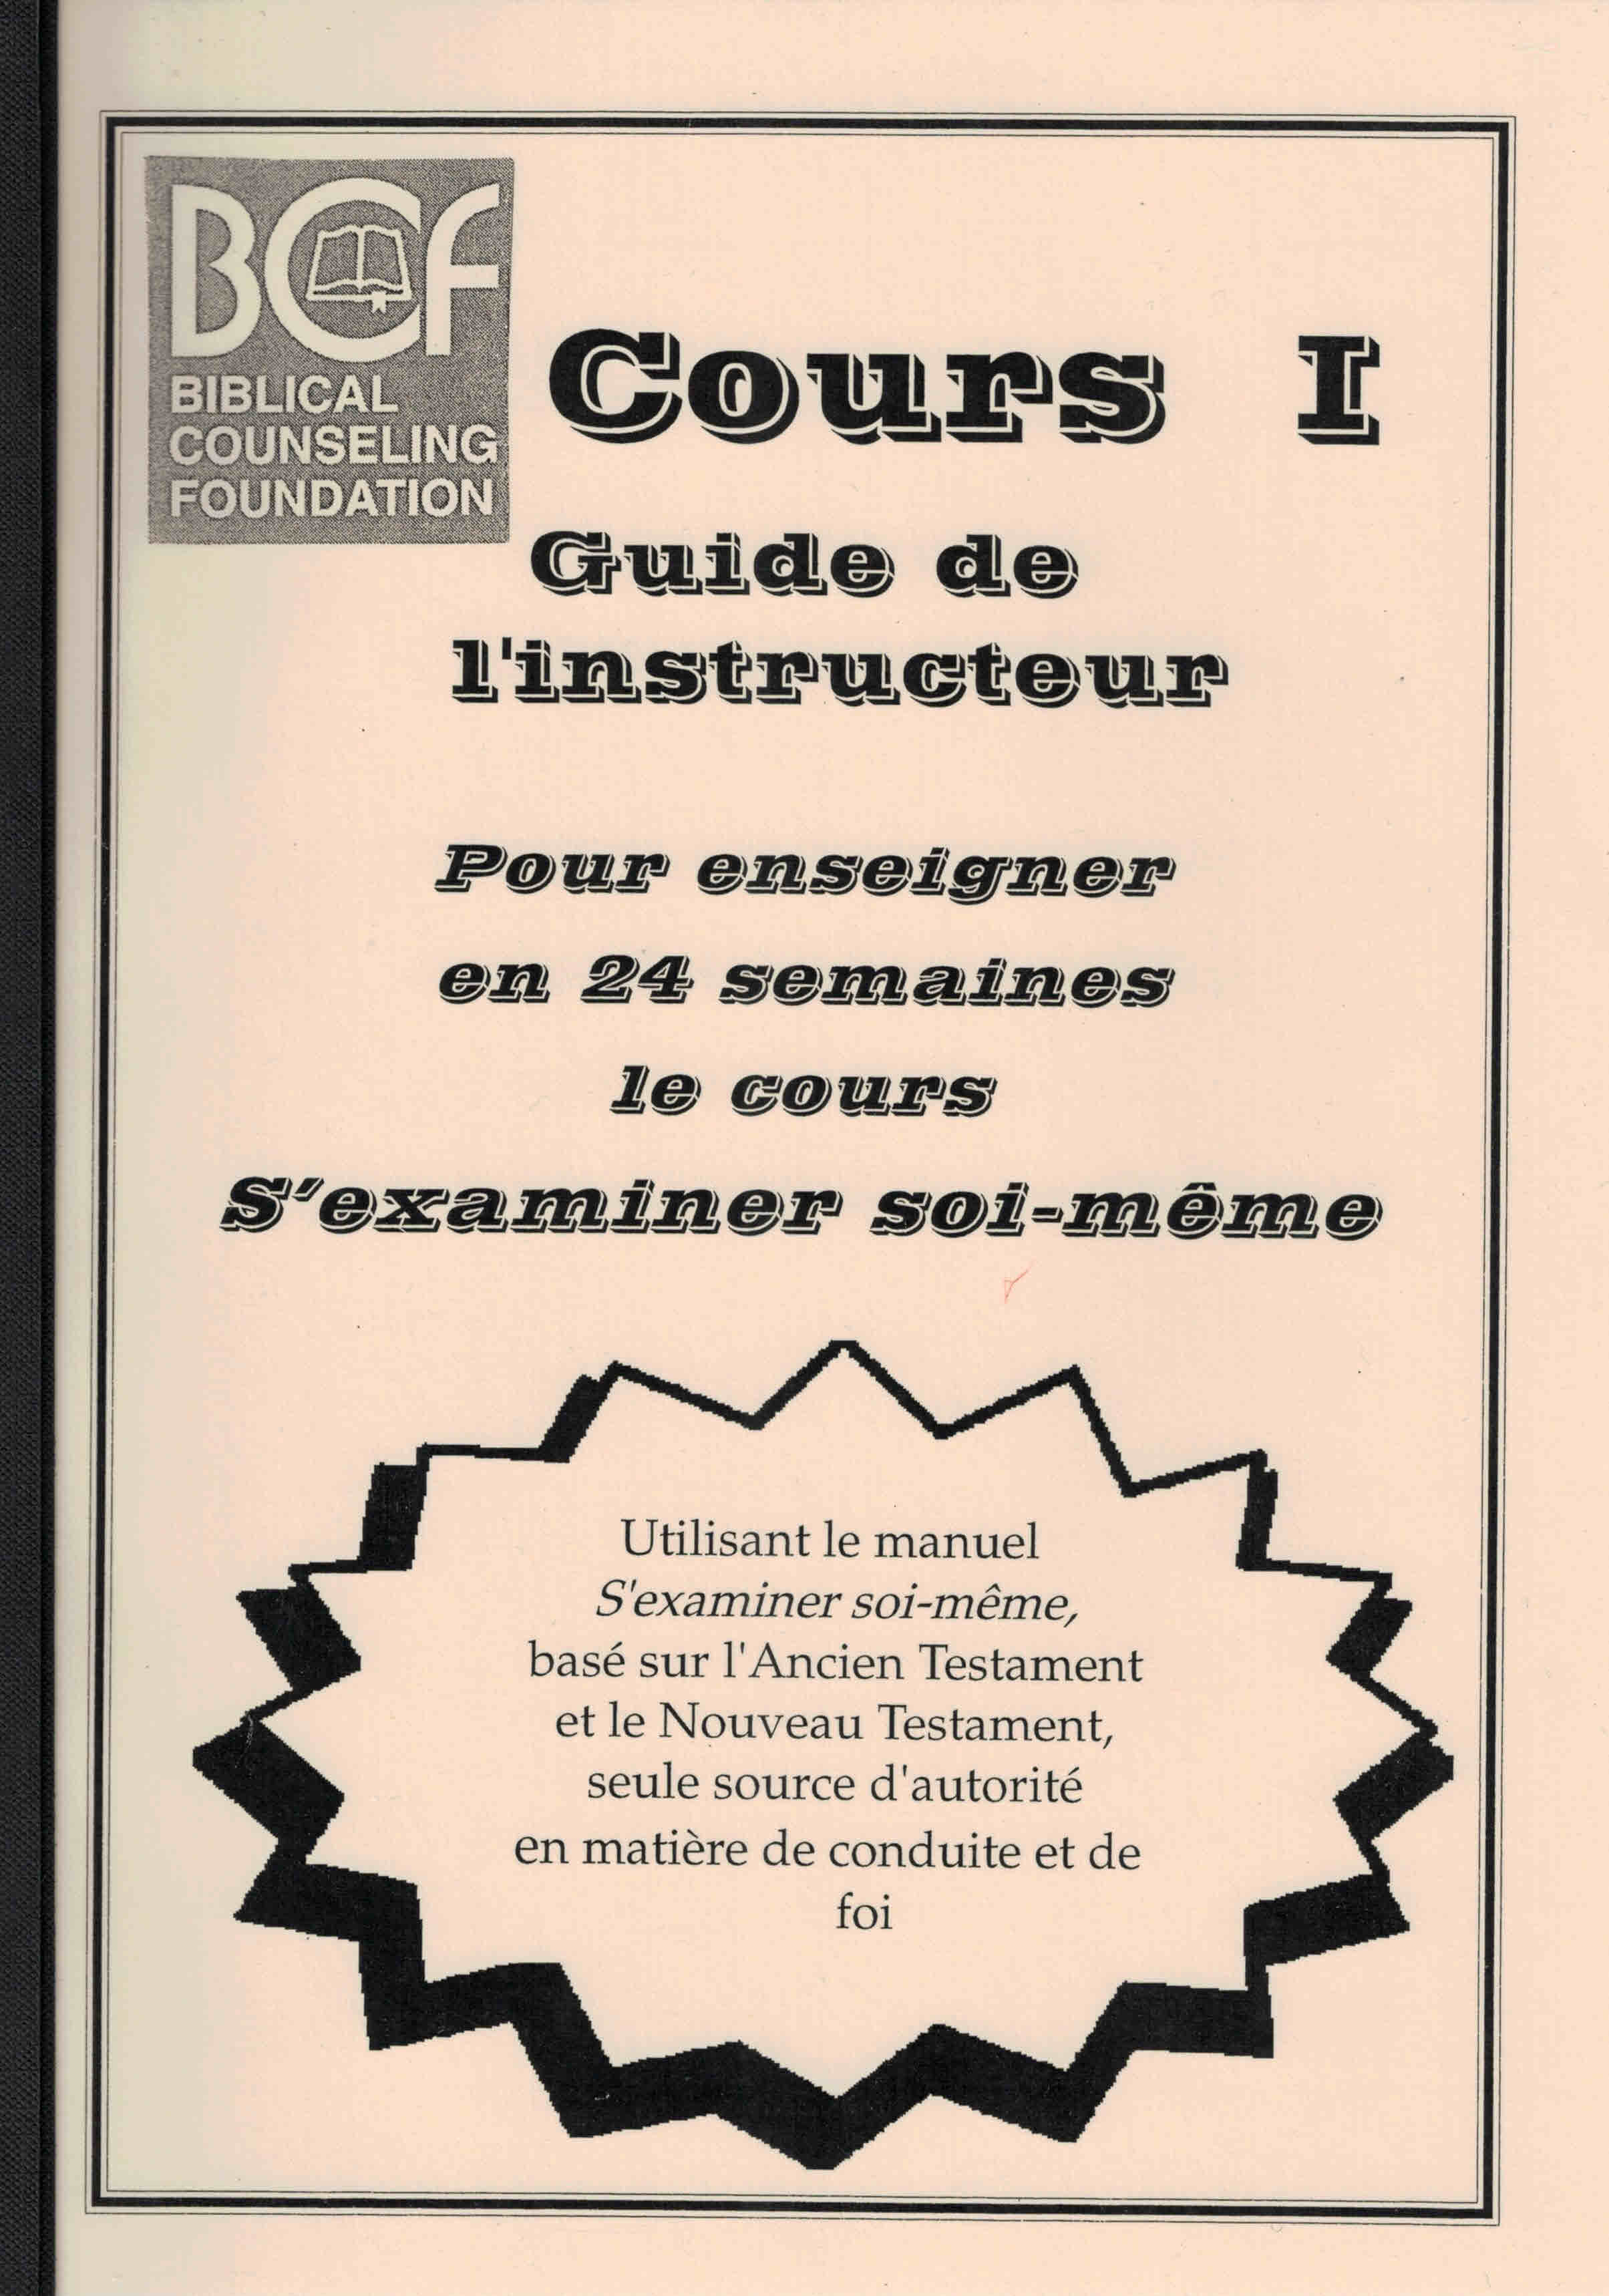 S'examiner soi-même cours 1